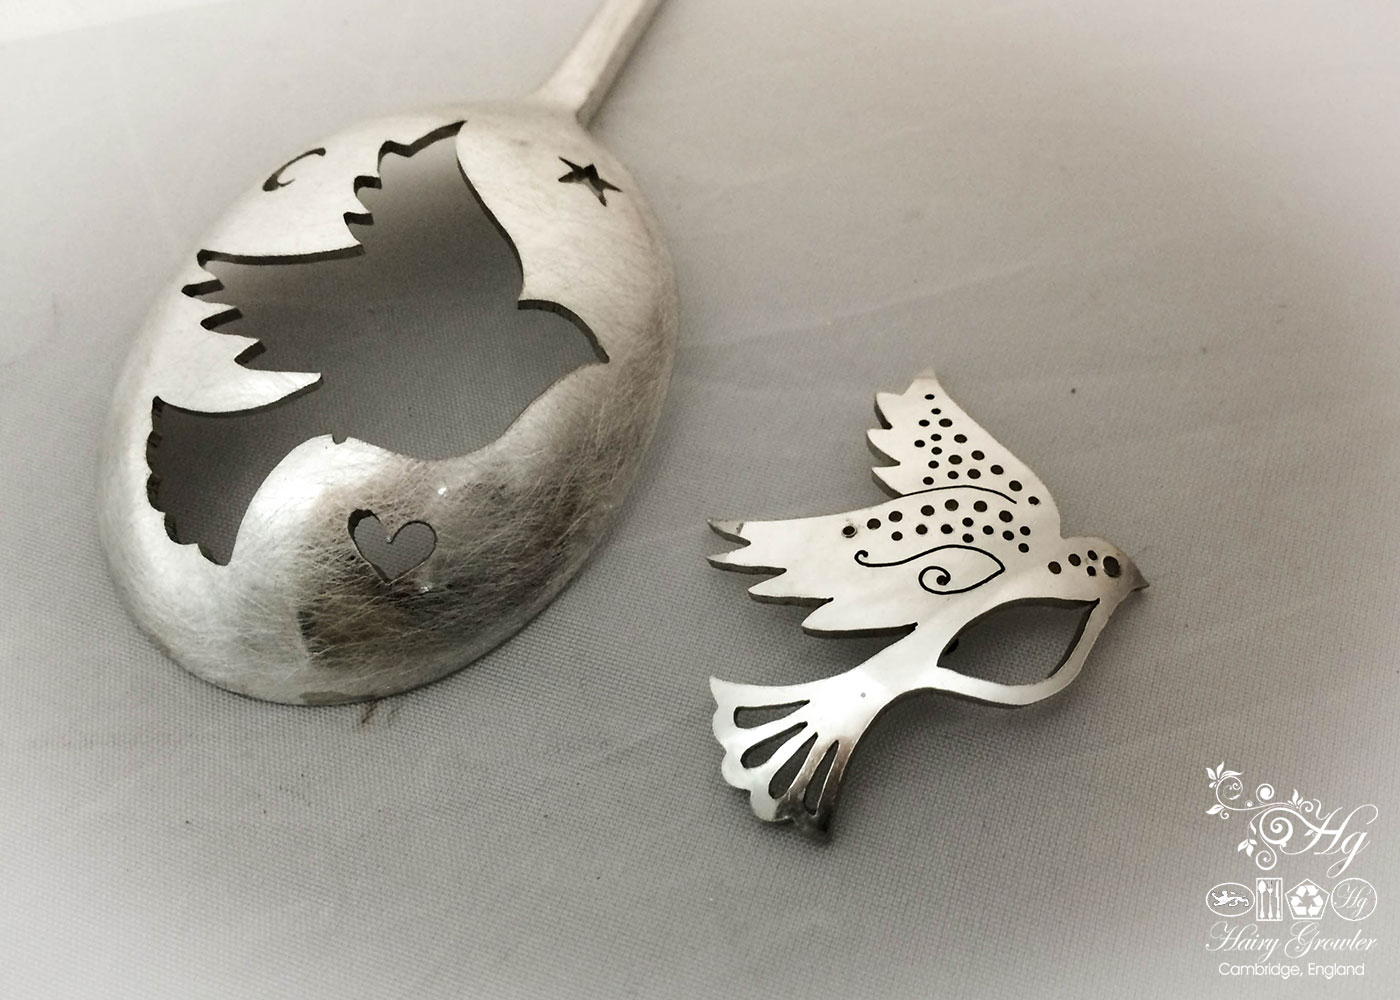 handmade and repurposed peace dove spoon brooch jewellery